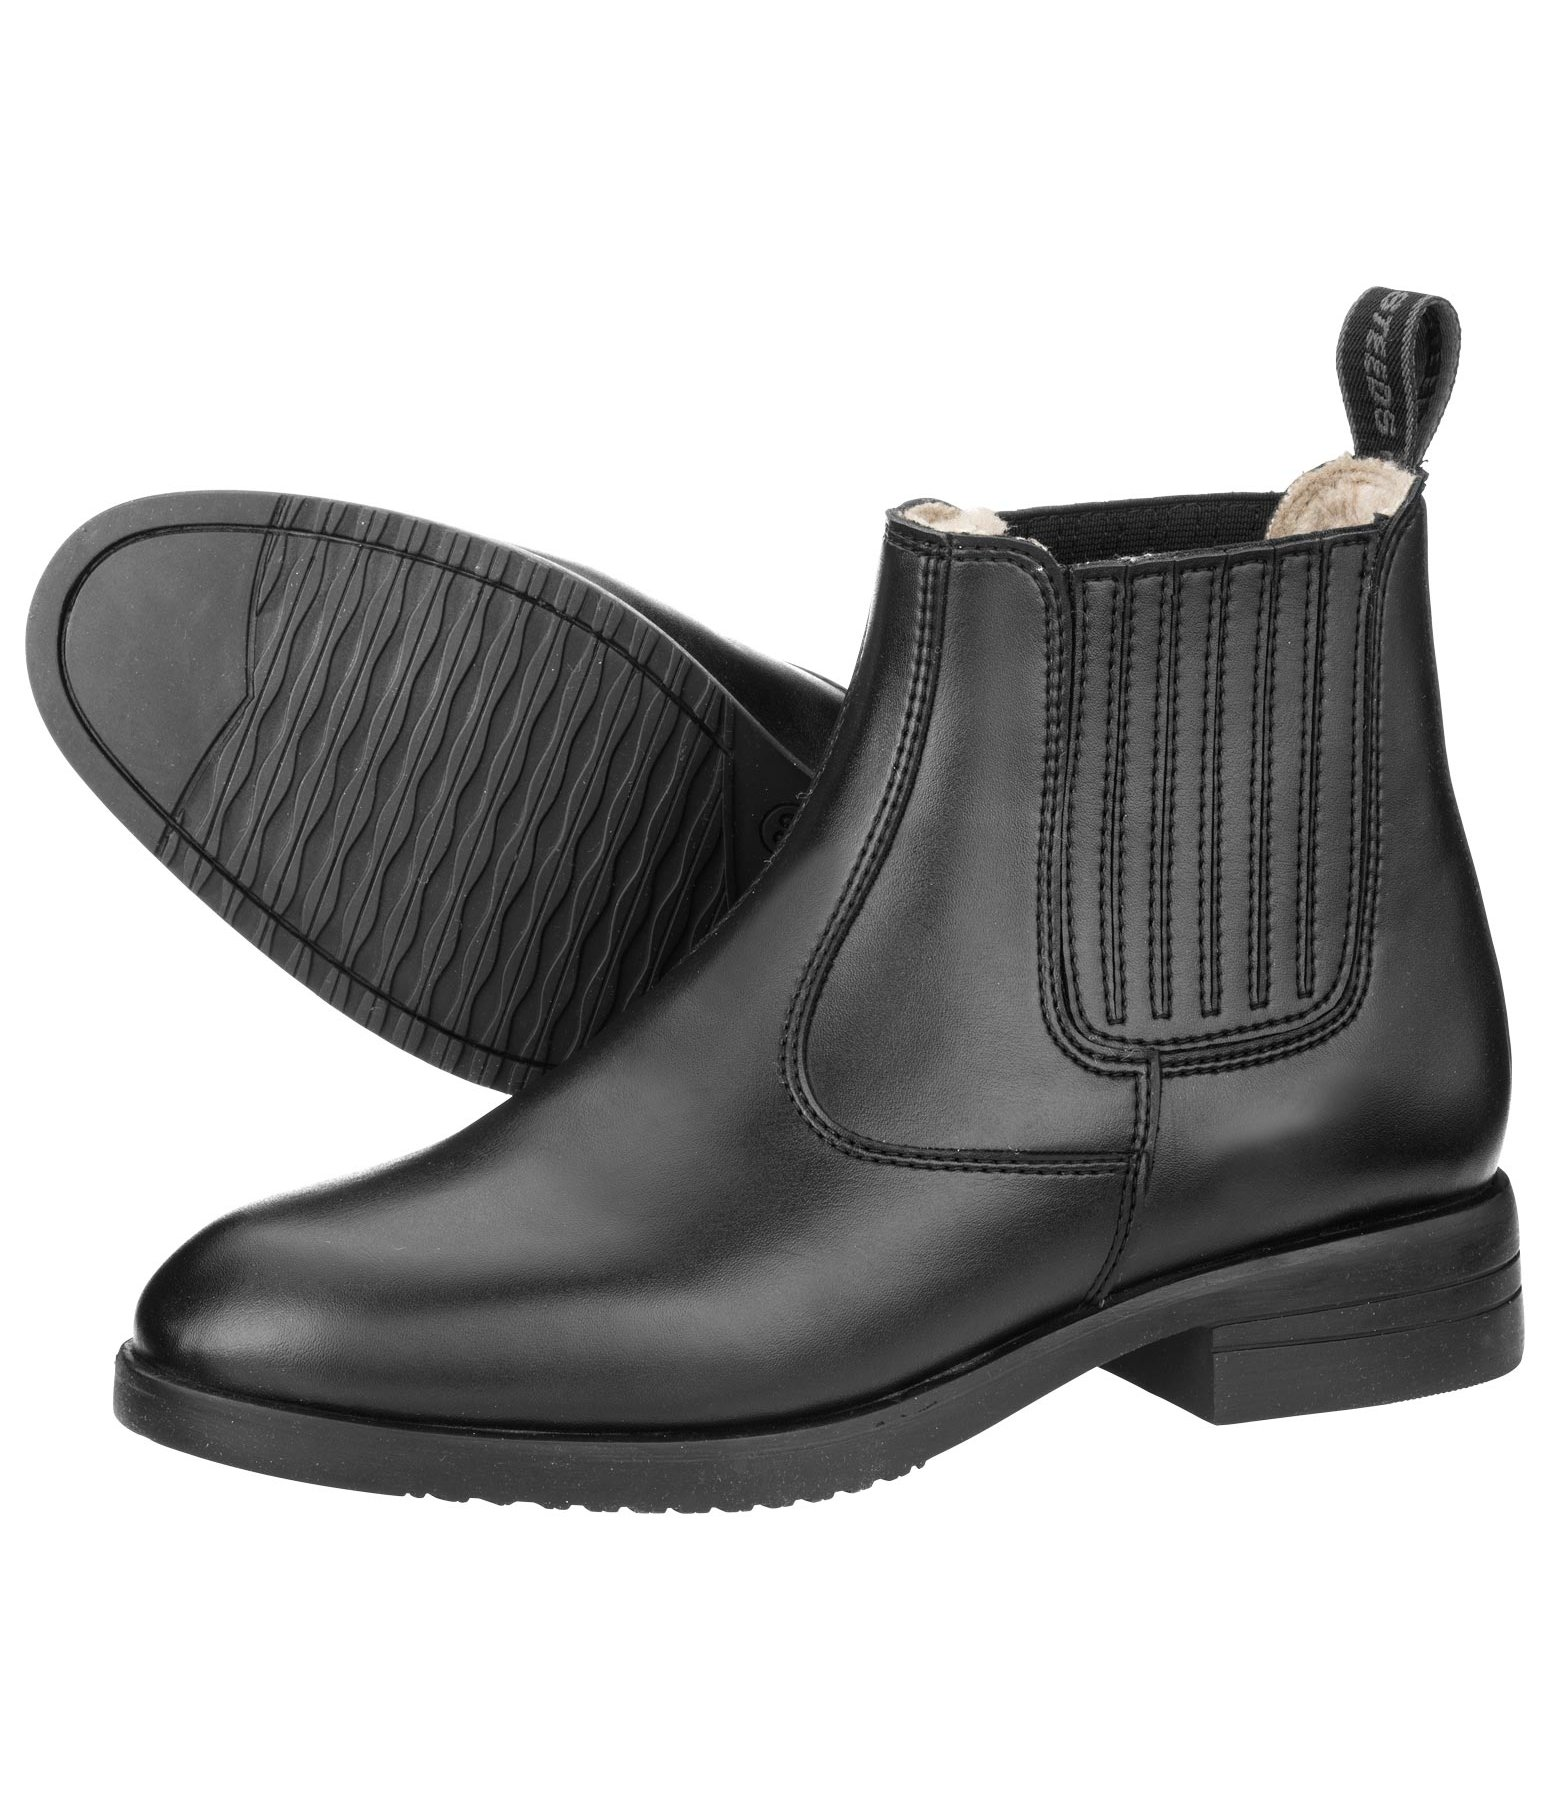 SYLKA Winter Paddock Boots Recruit III